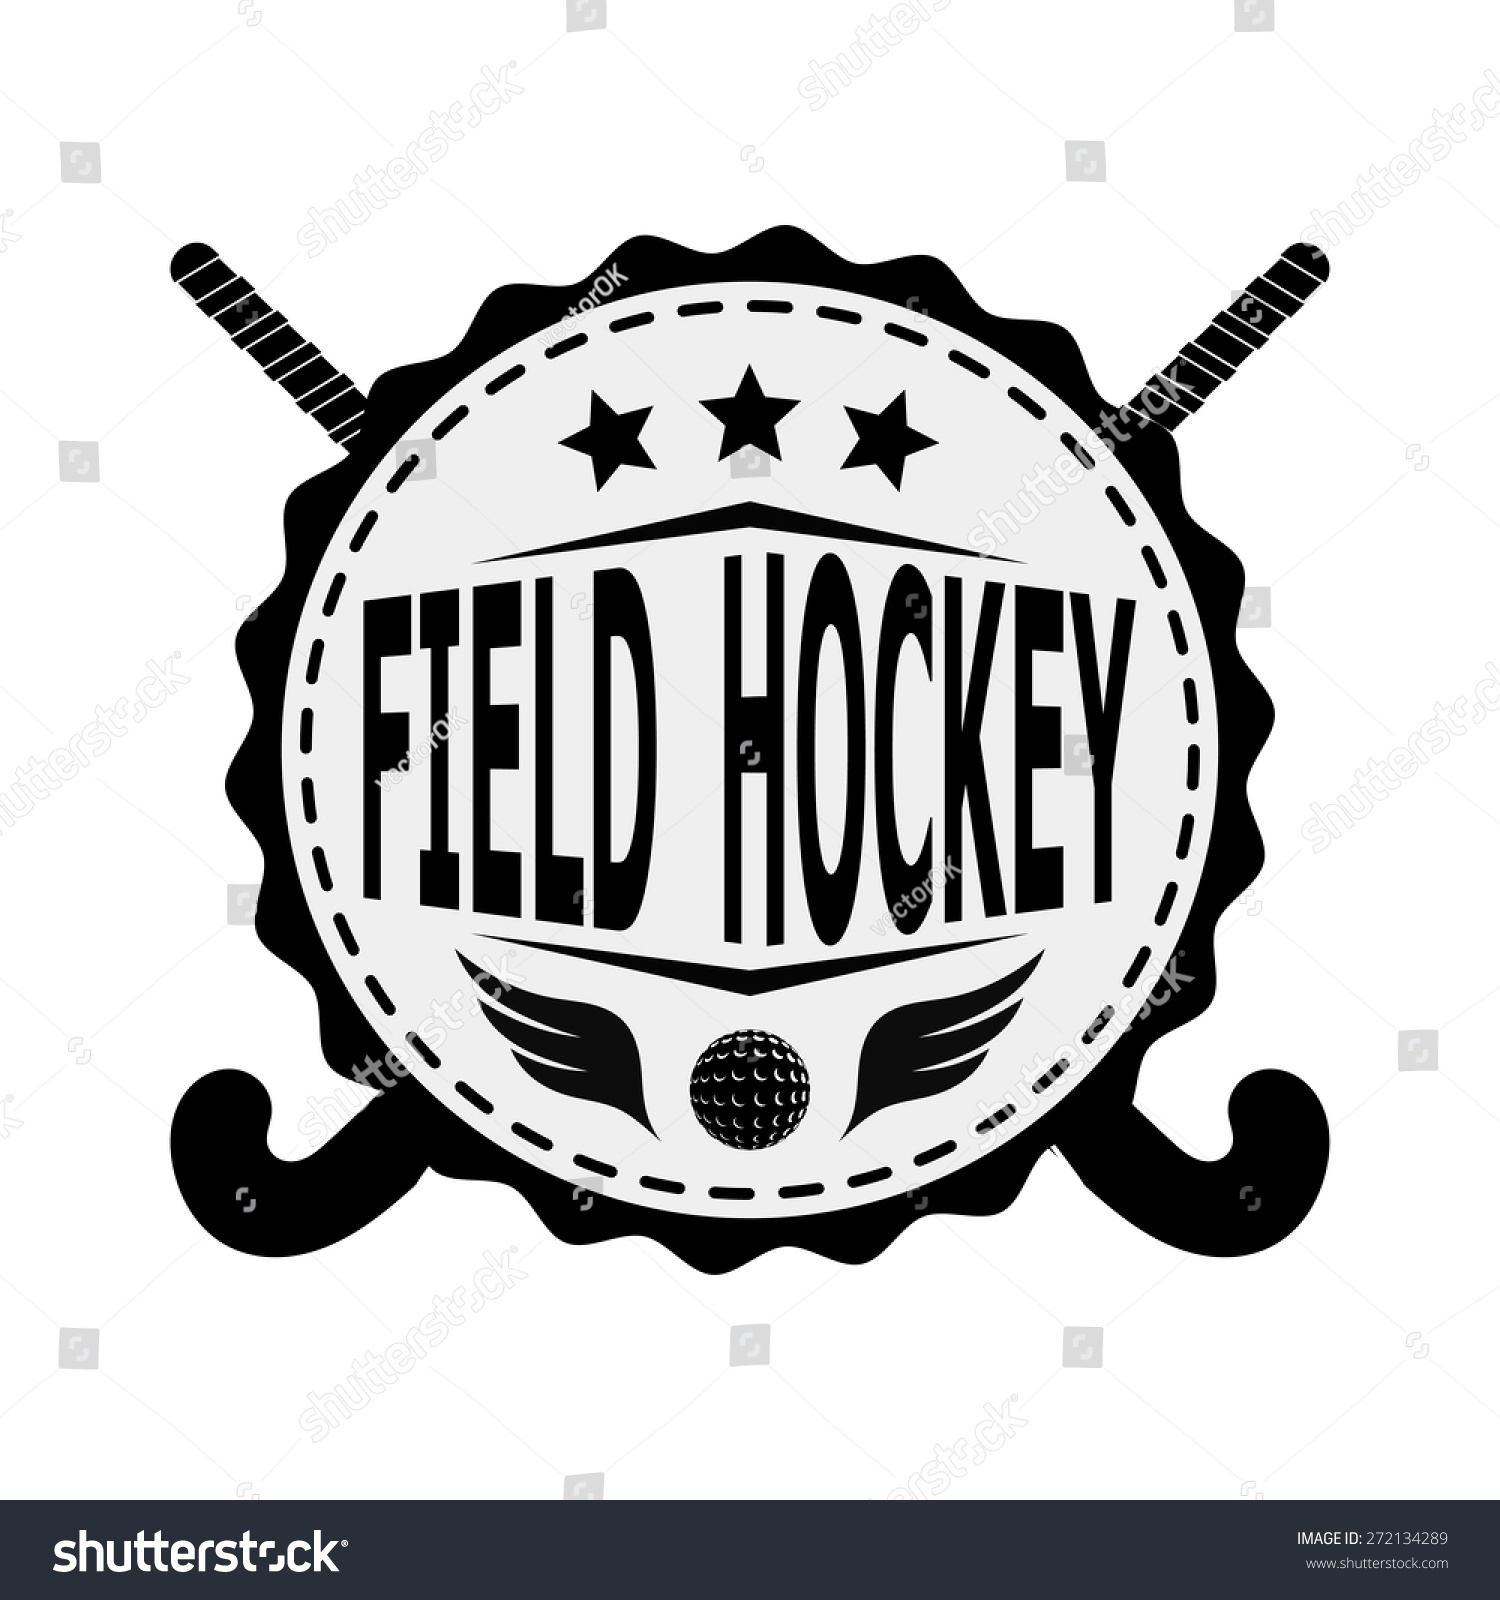 Black badge emblem design team field stock vector 272134289 black badge emblem design for the team field hockey on a white background vector illustration biocorpaavc Image collections